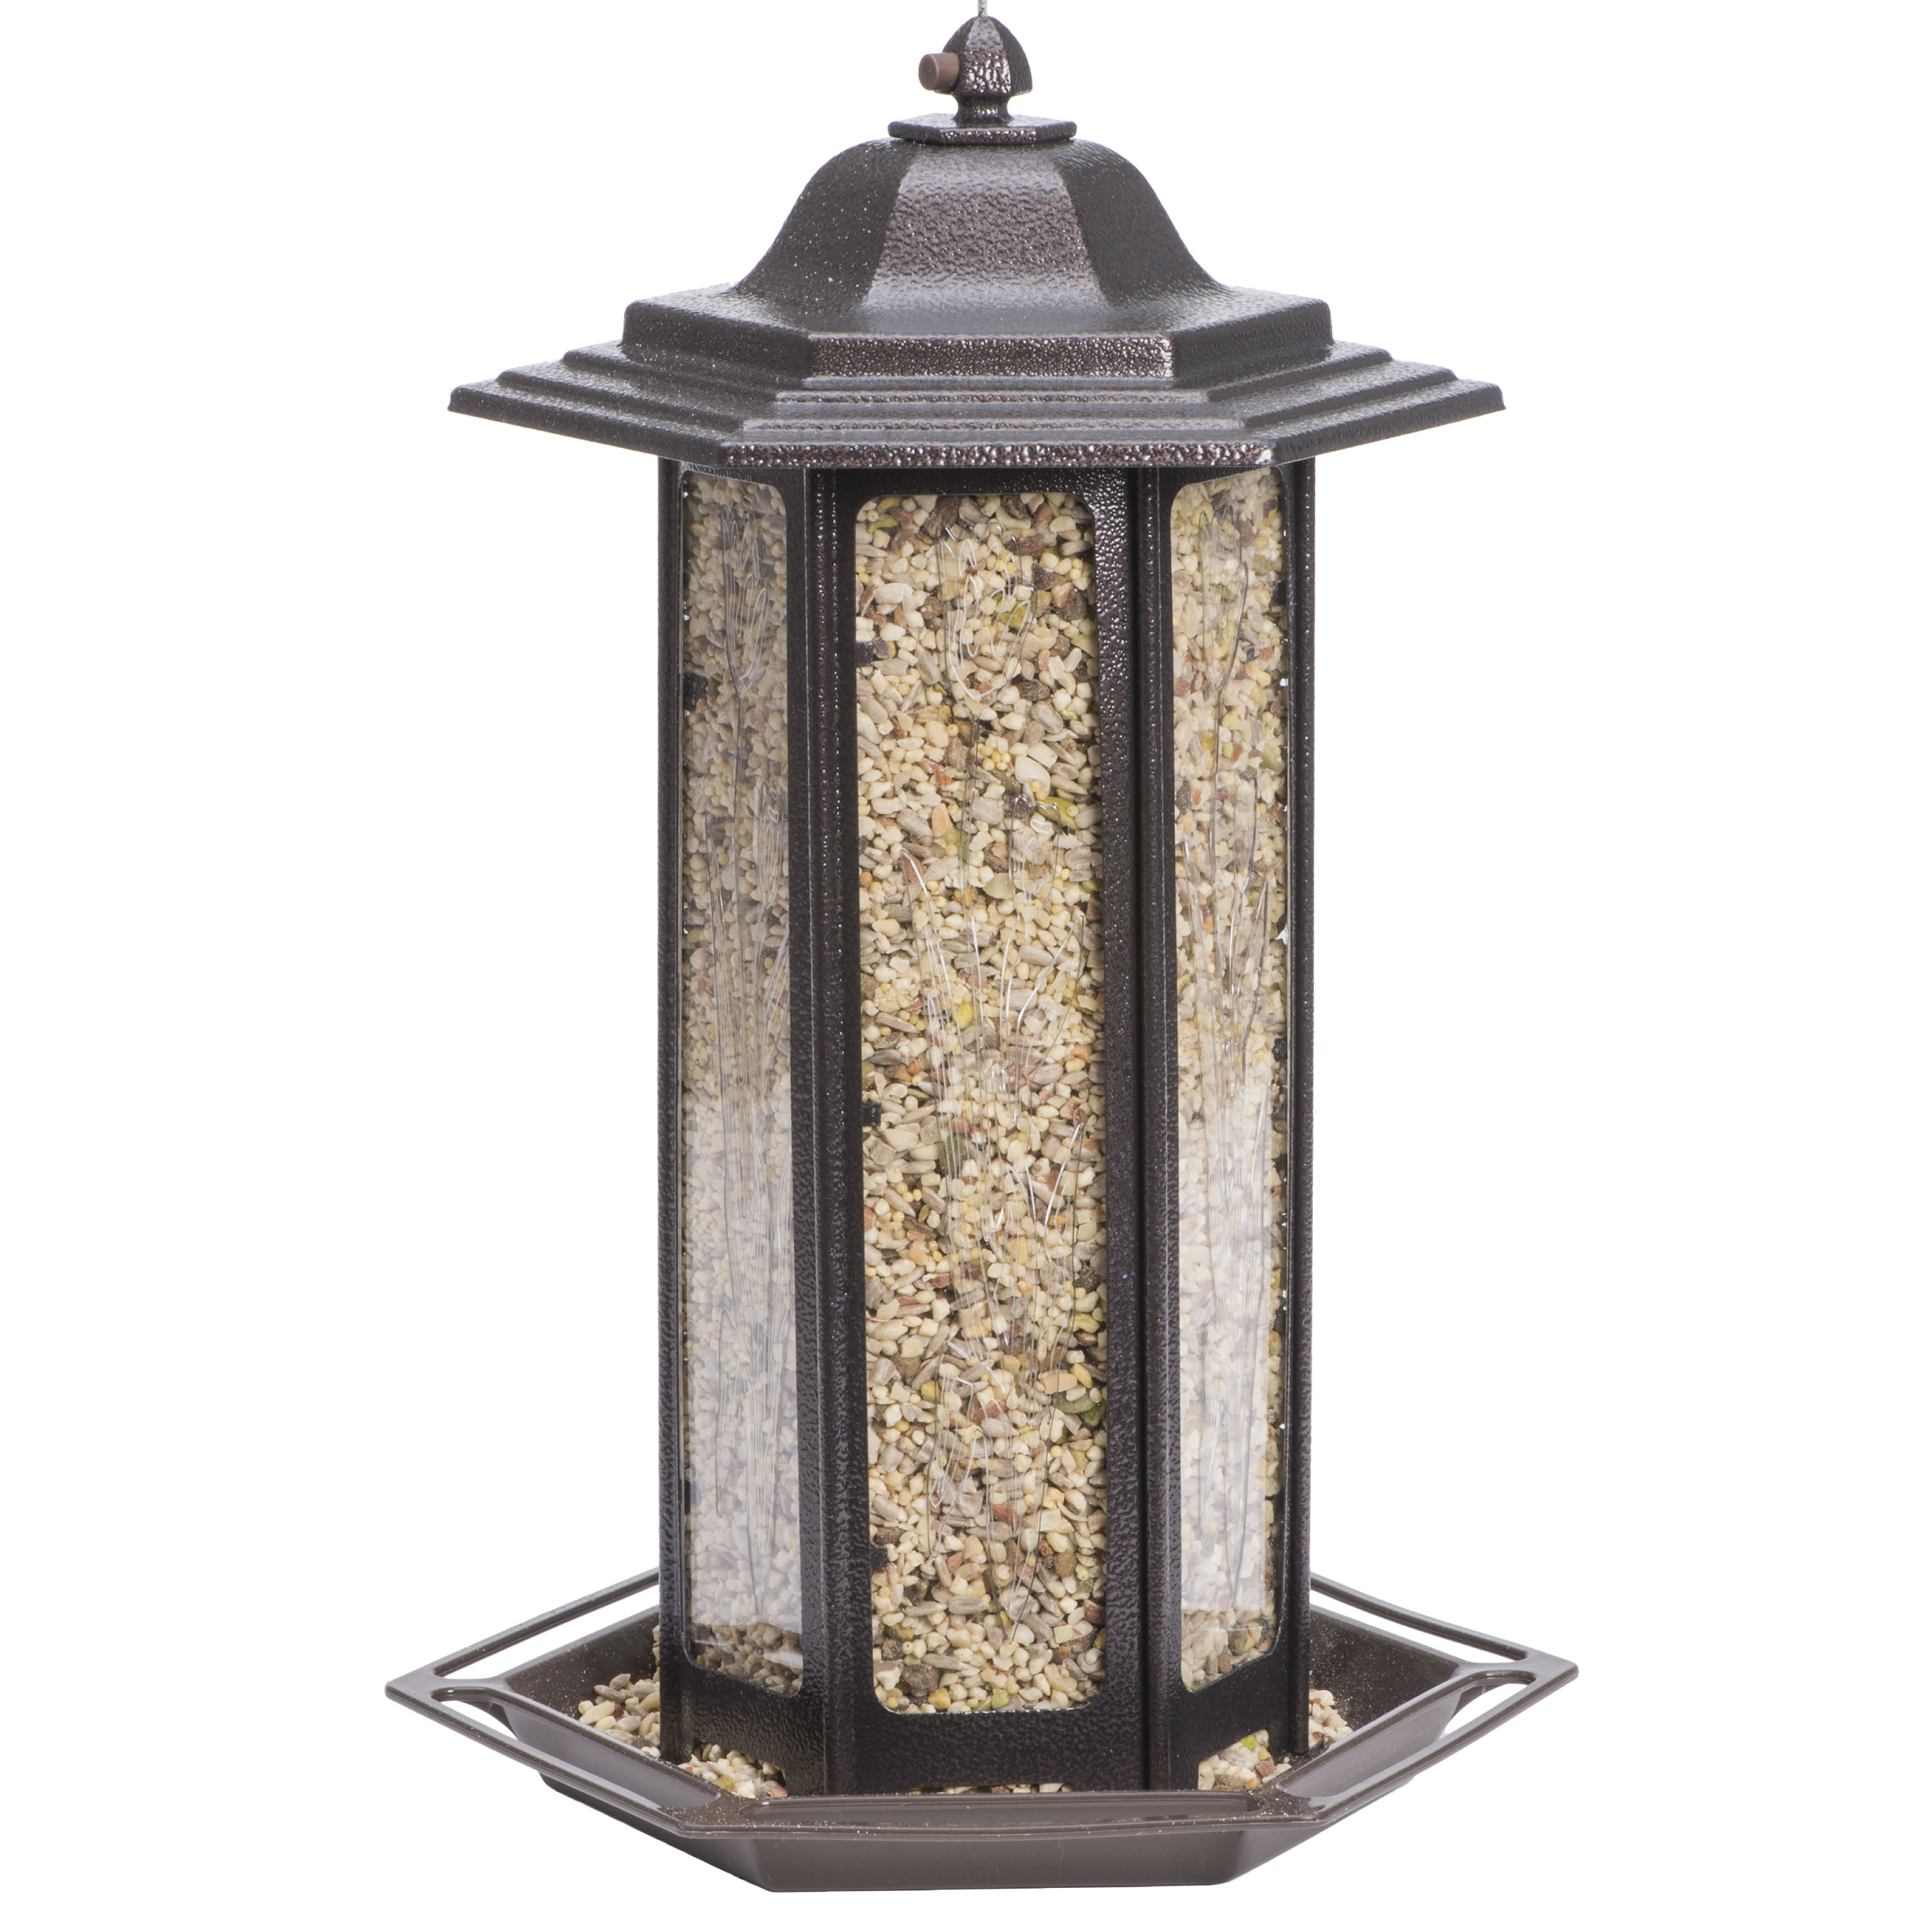 Perky-Pet 6 lb Tall Tulip Garden Lantern Bird Feeder